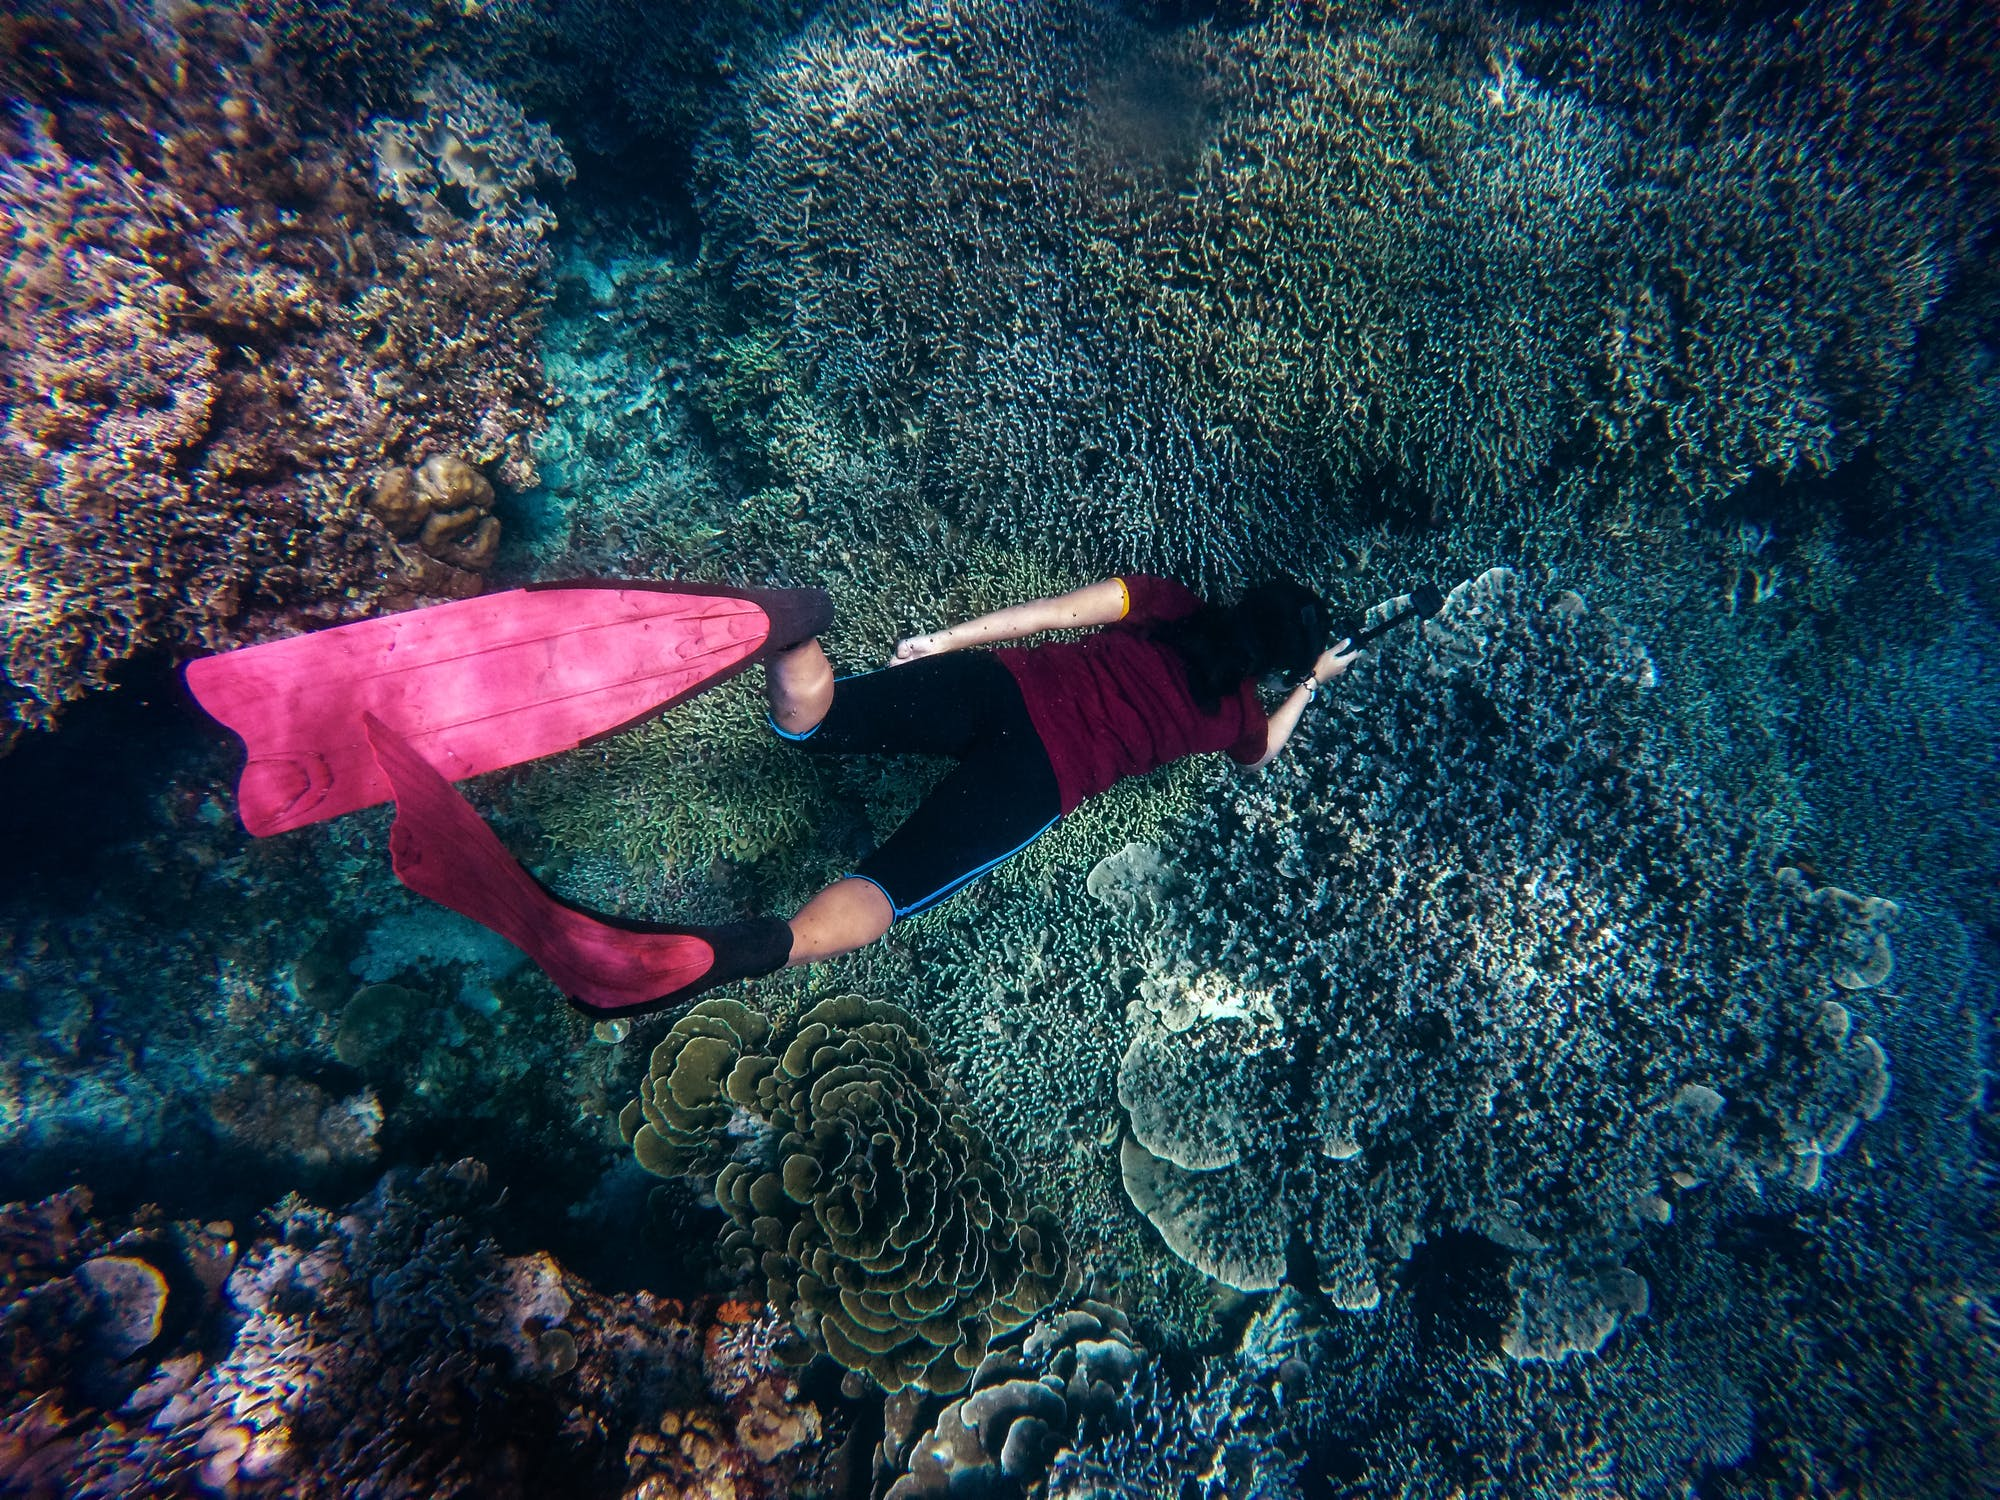 Diving in the coral reefs